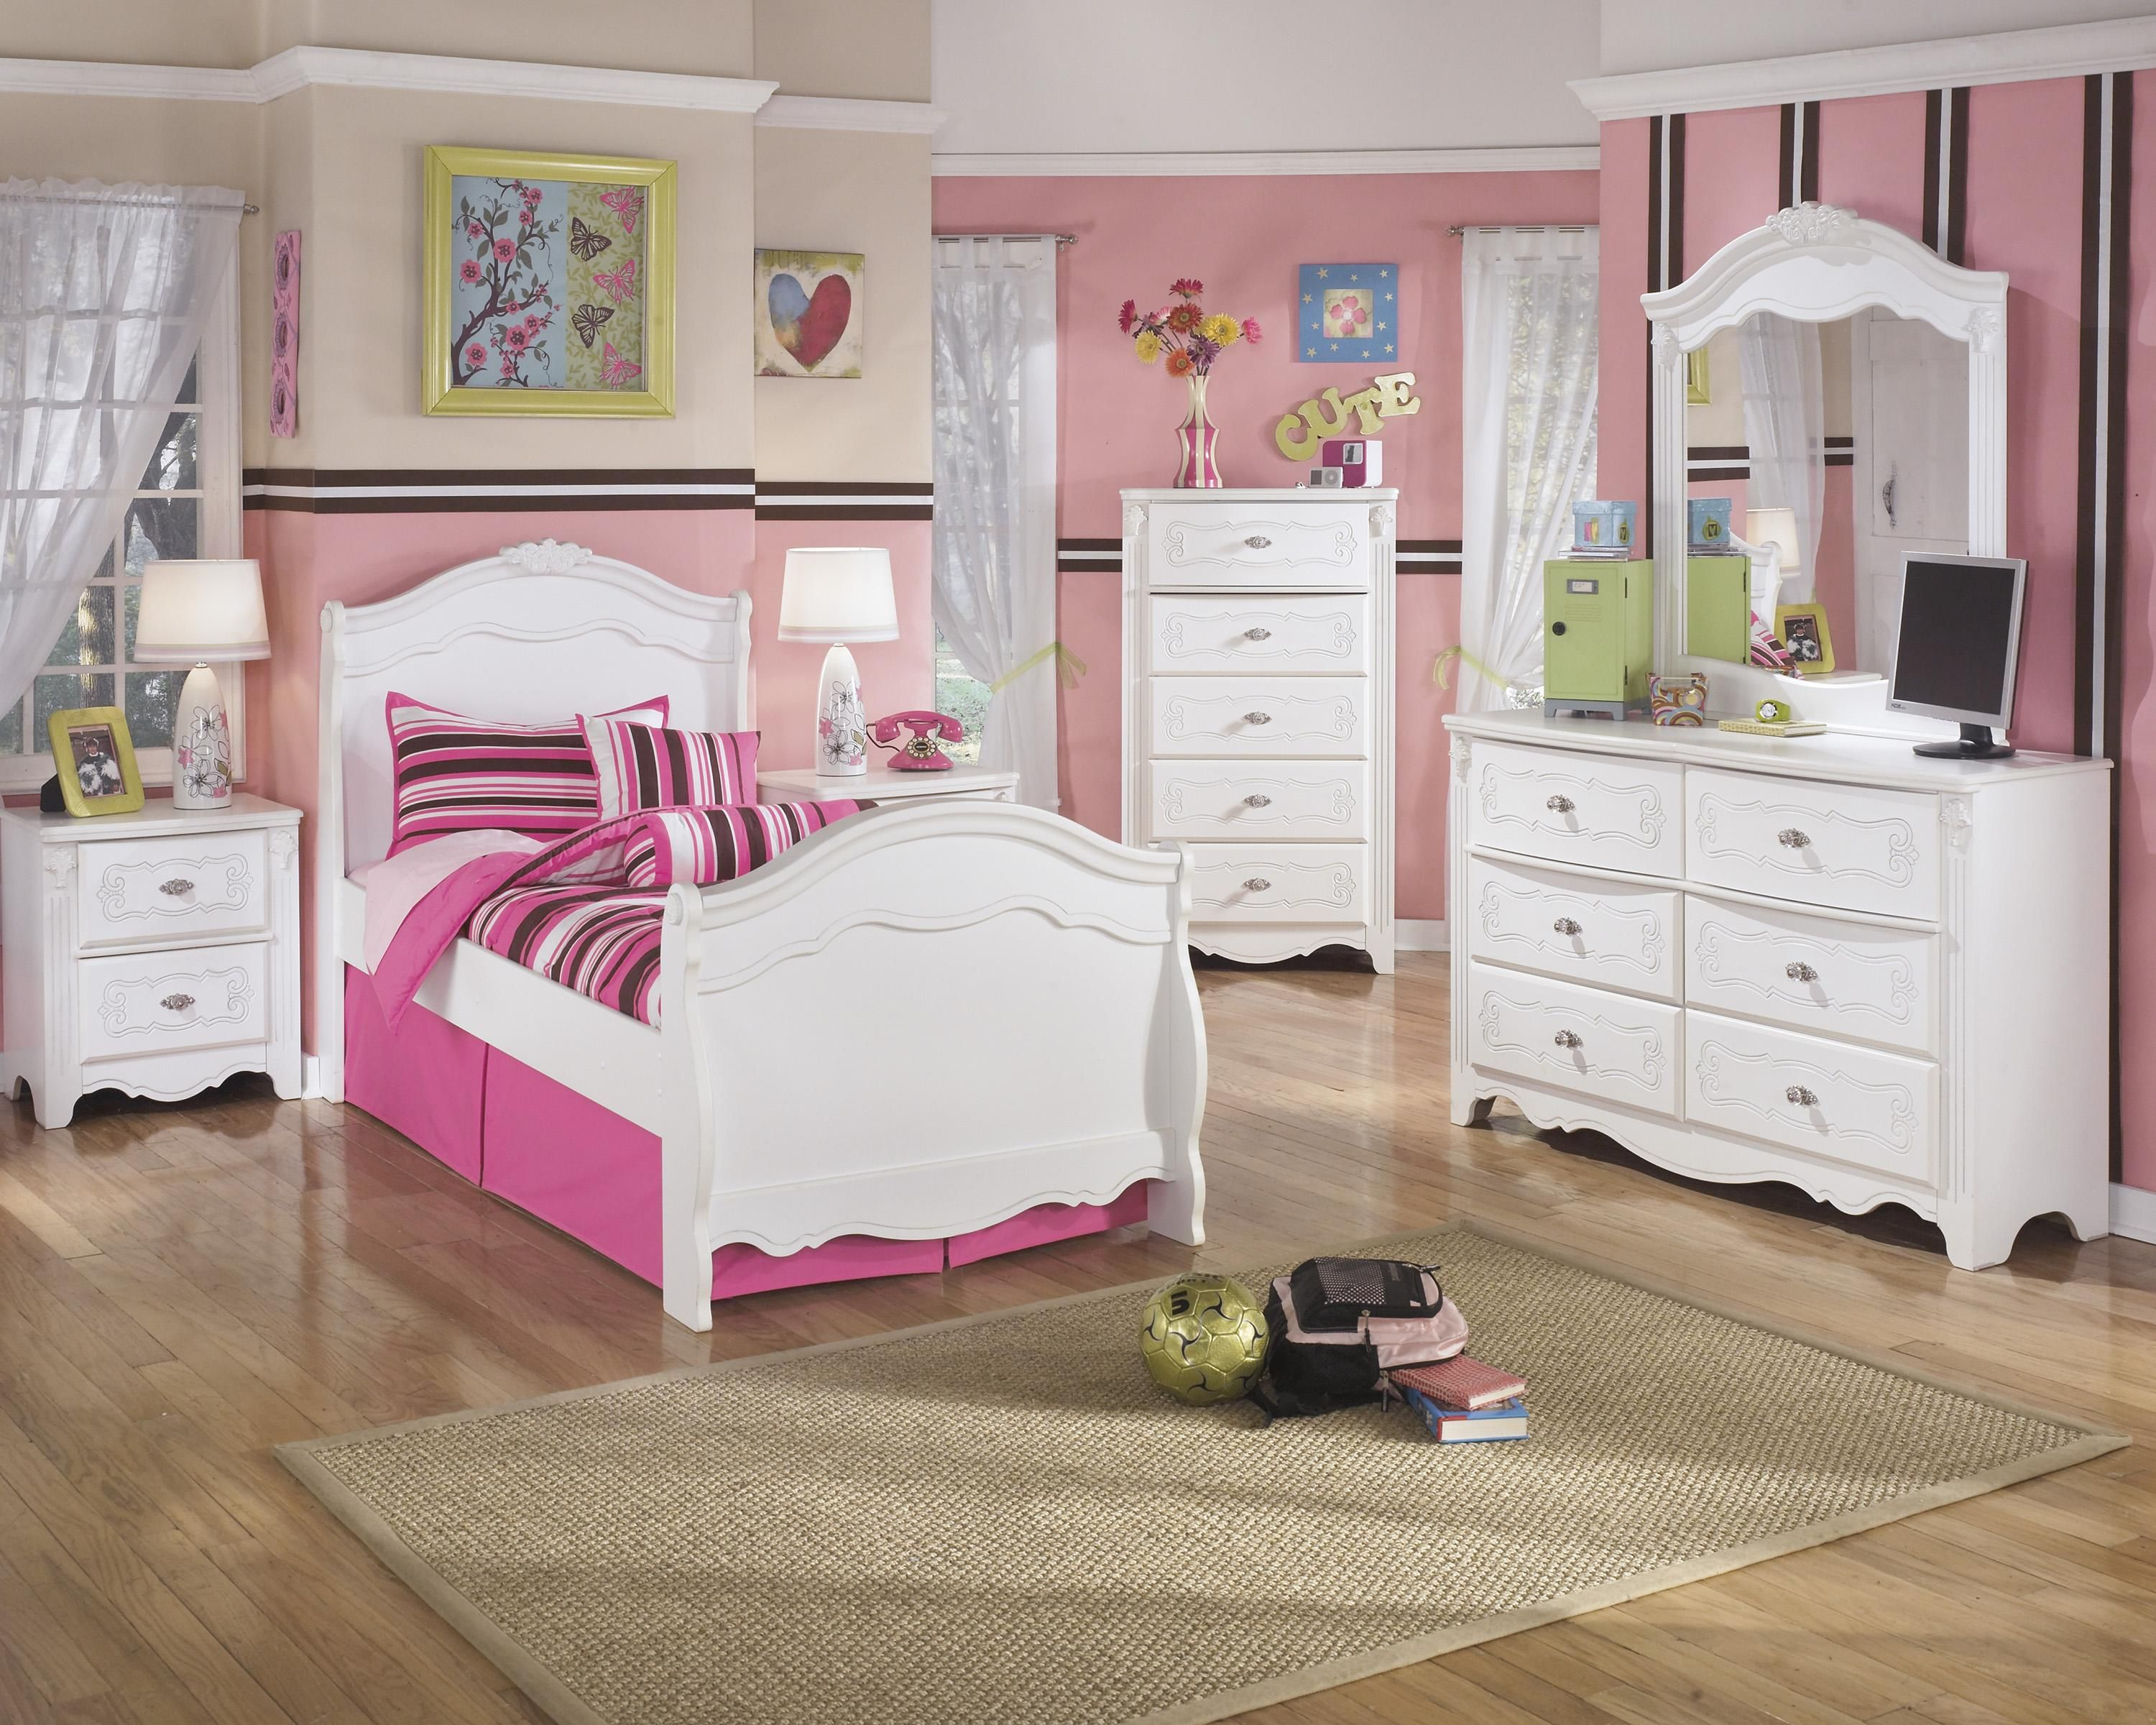 products item threshold design and by group bedroom laddi signature twin ashley ladditwin furniture width height trim bed